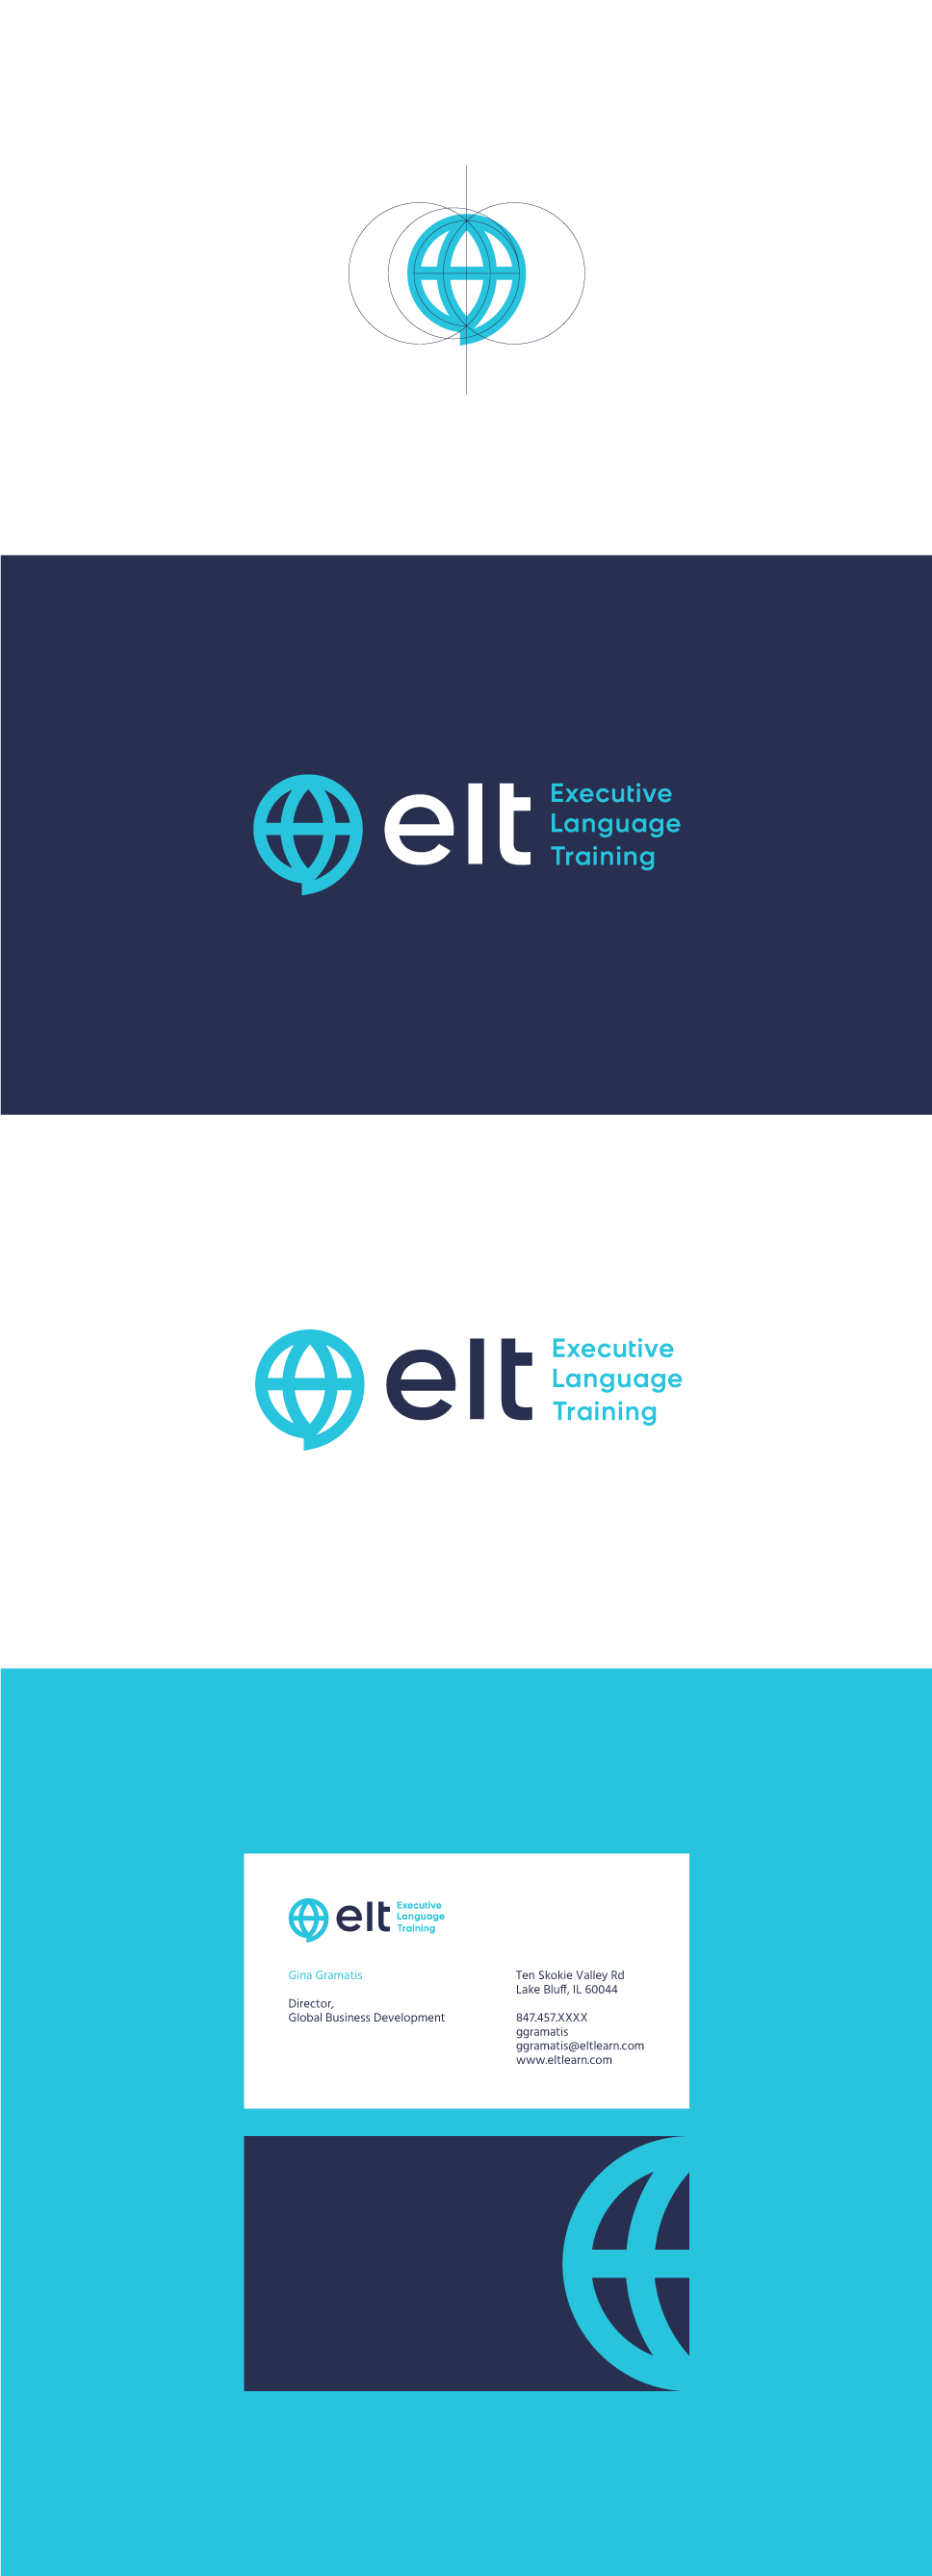 blue globe logo and business card design for a language training